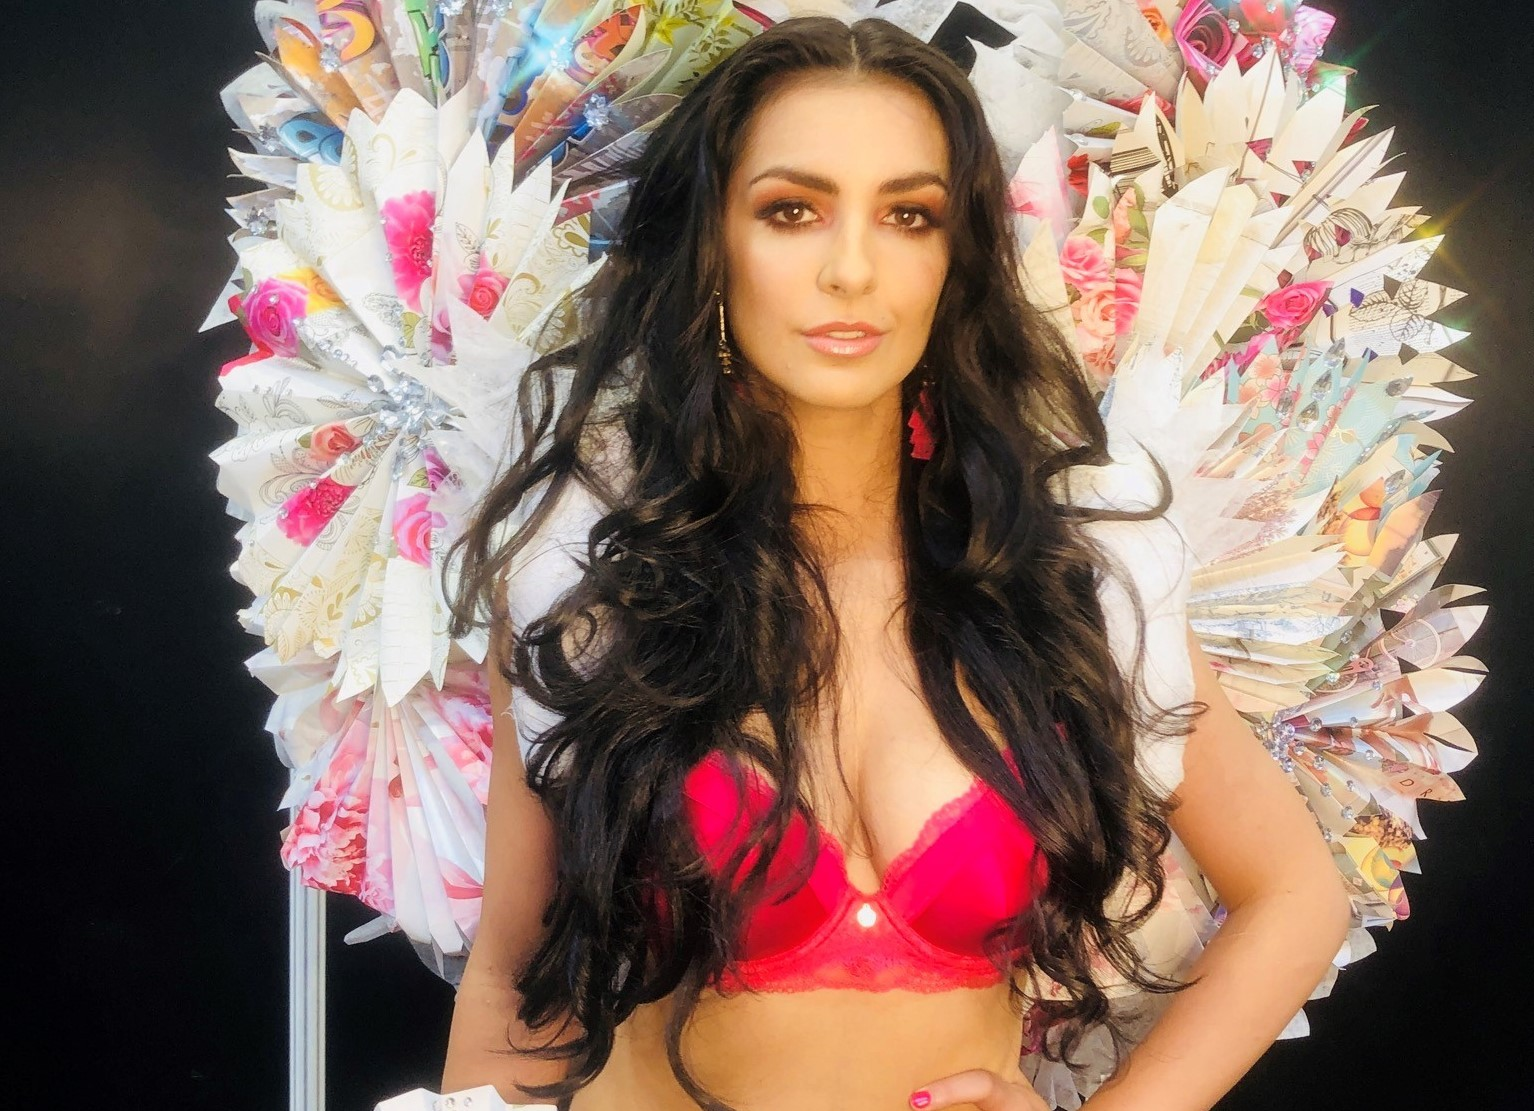 Amy Smith at the Victoria's Secret themed fashion and hair competition